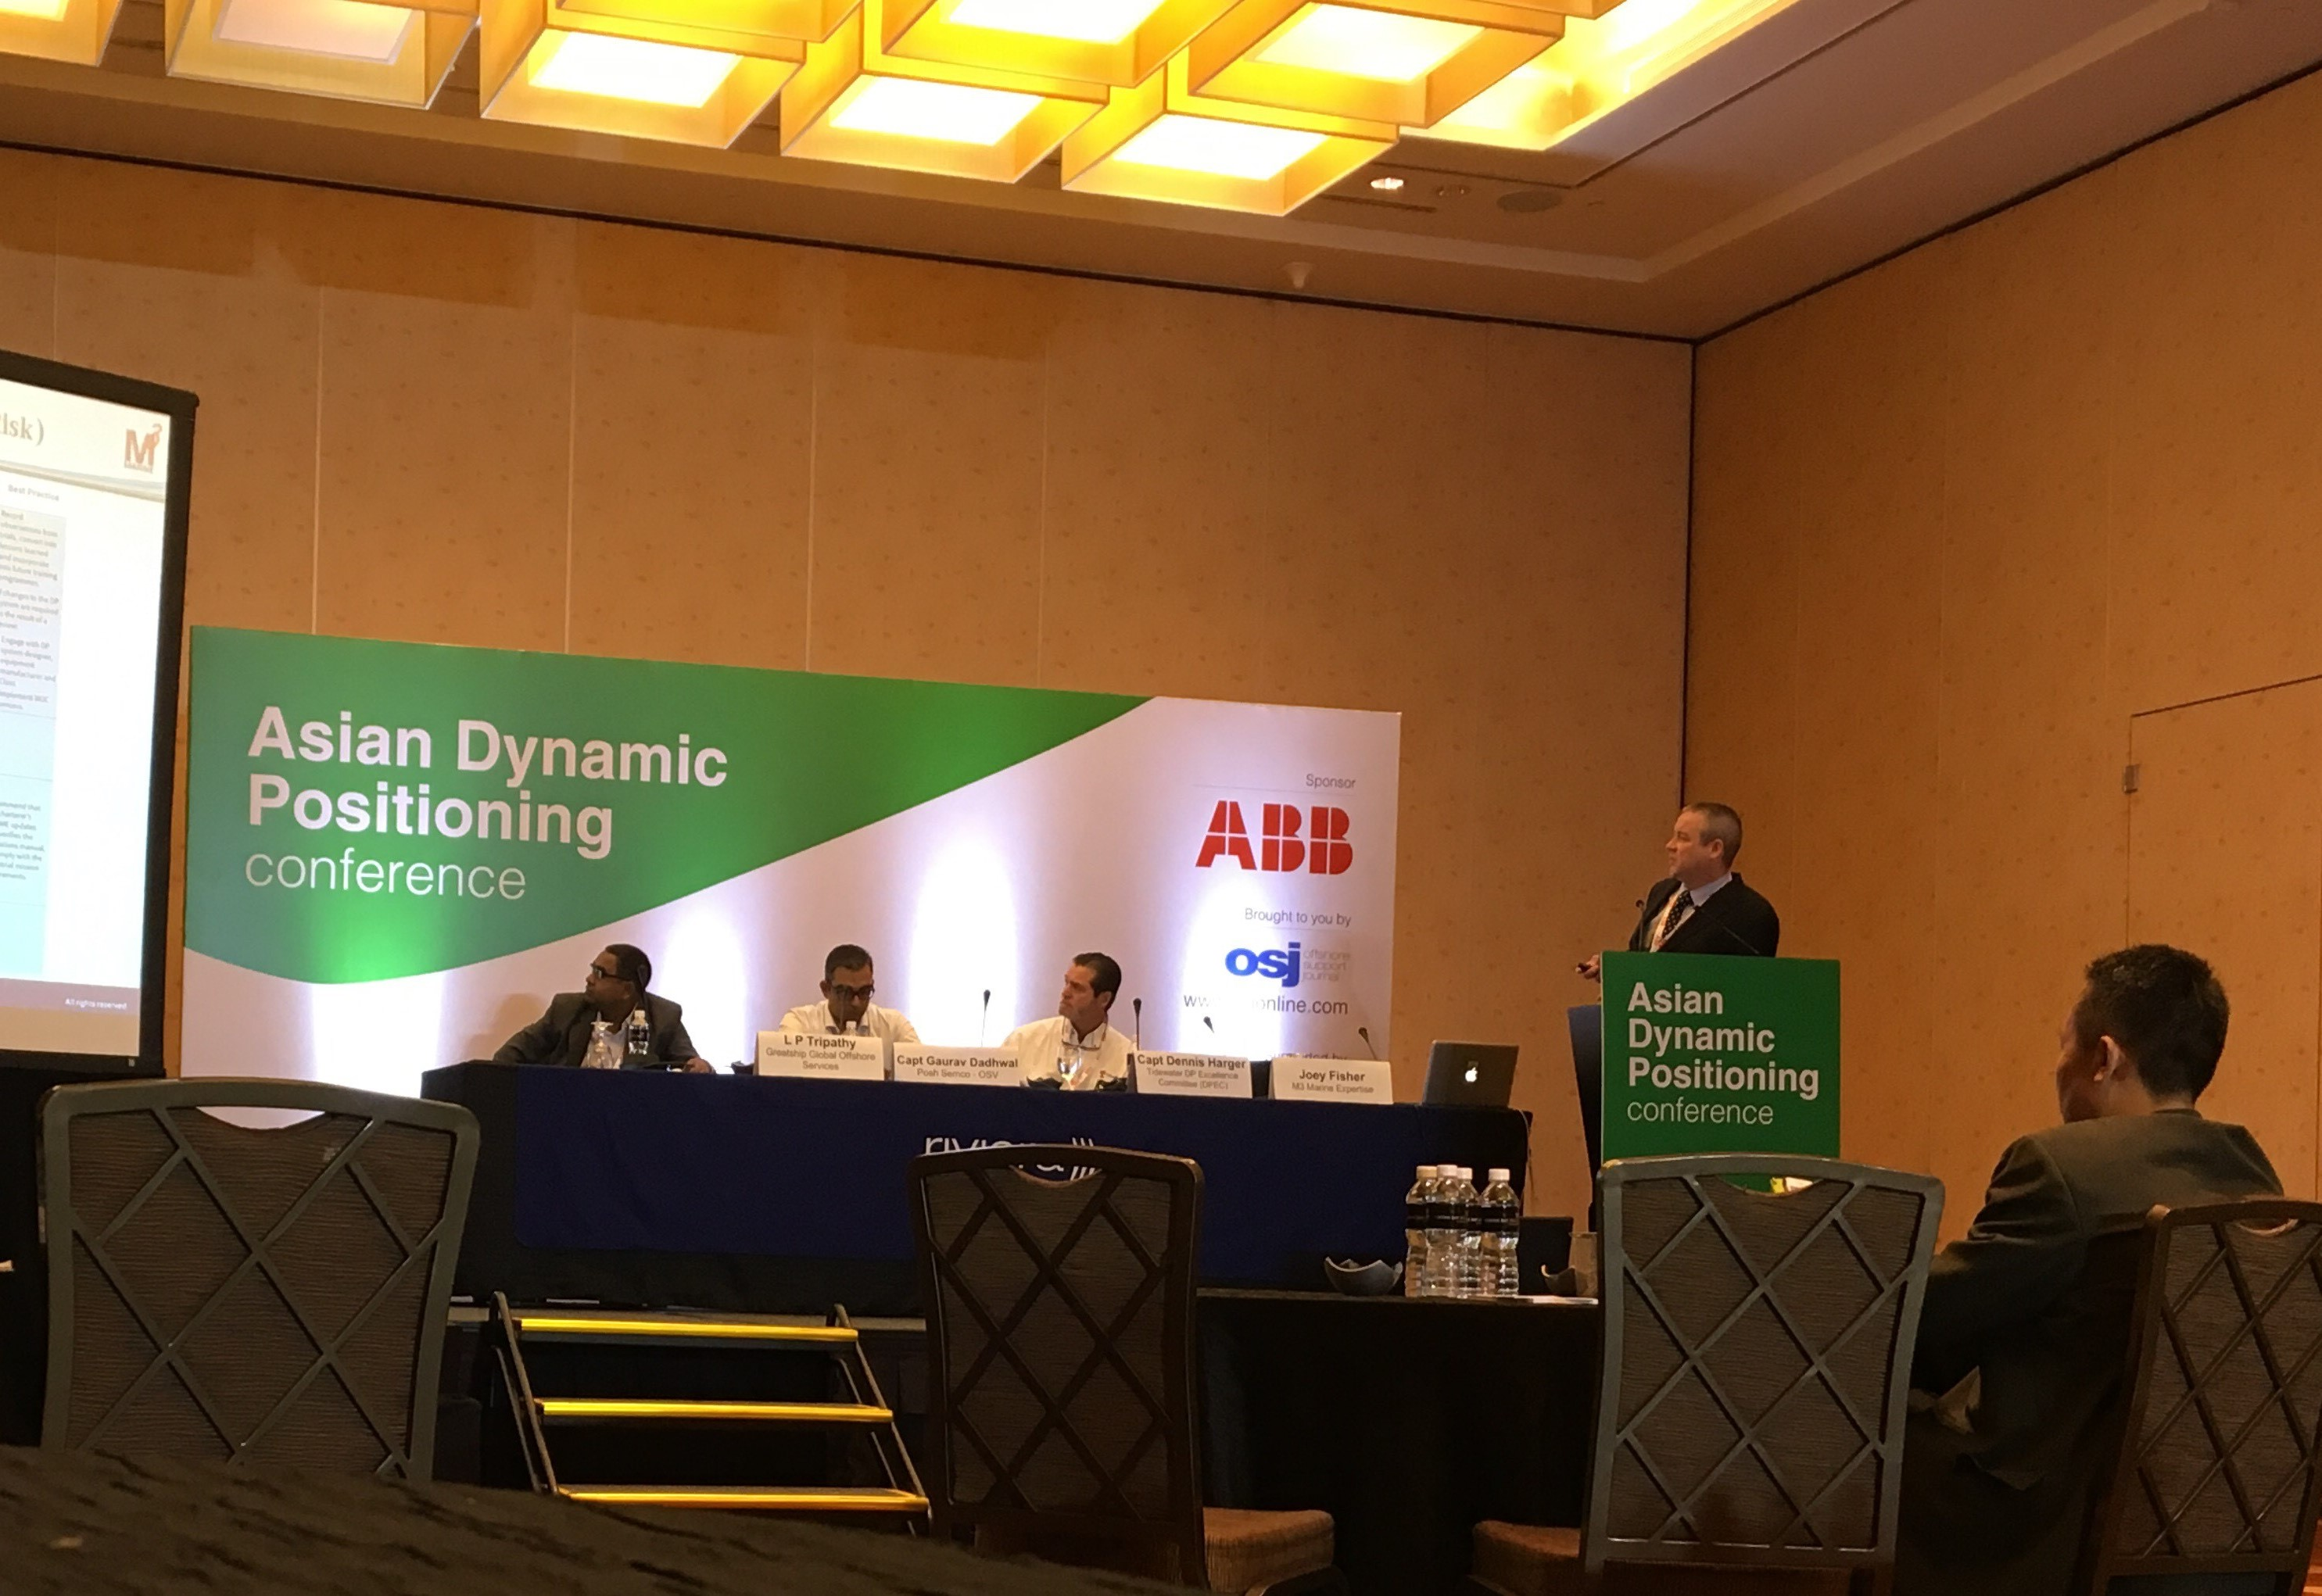 The Asian Dynamic Positioning Conference 2016